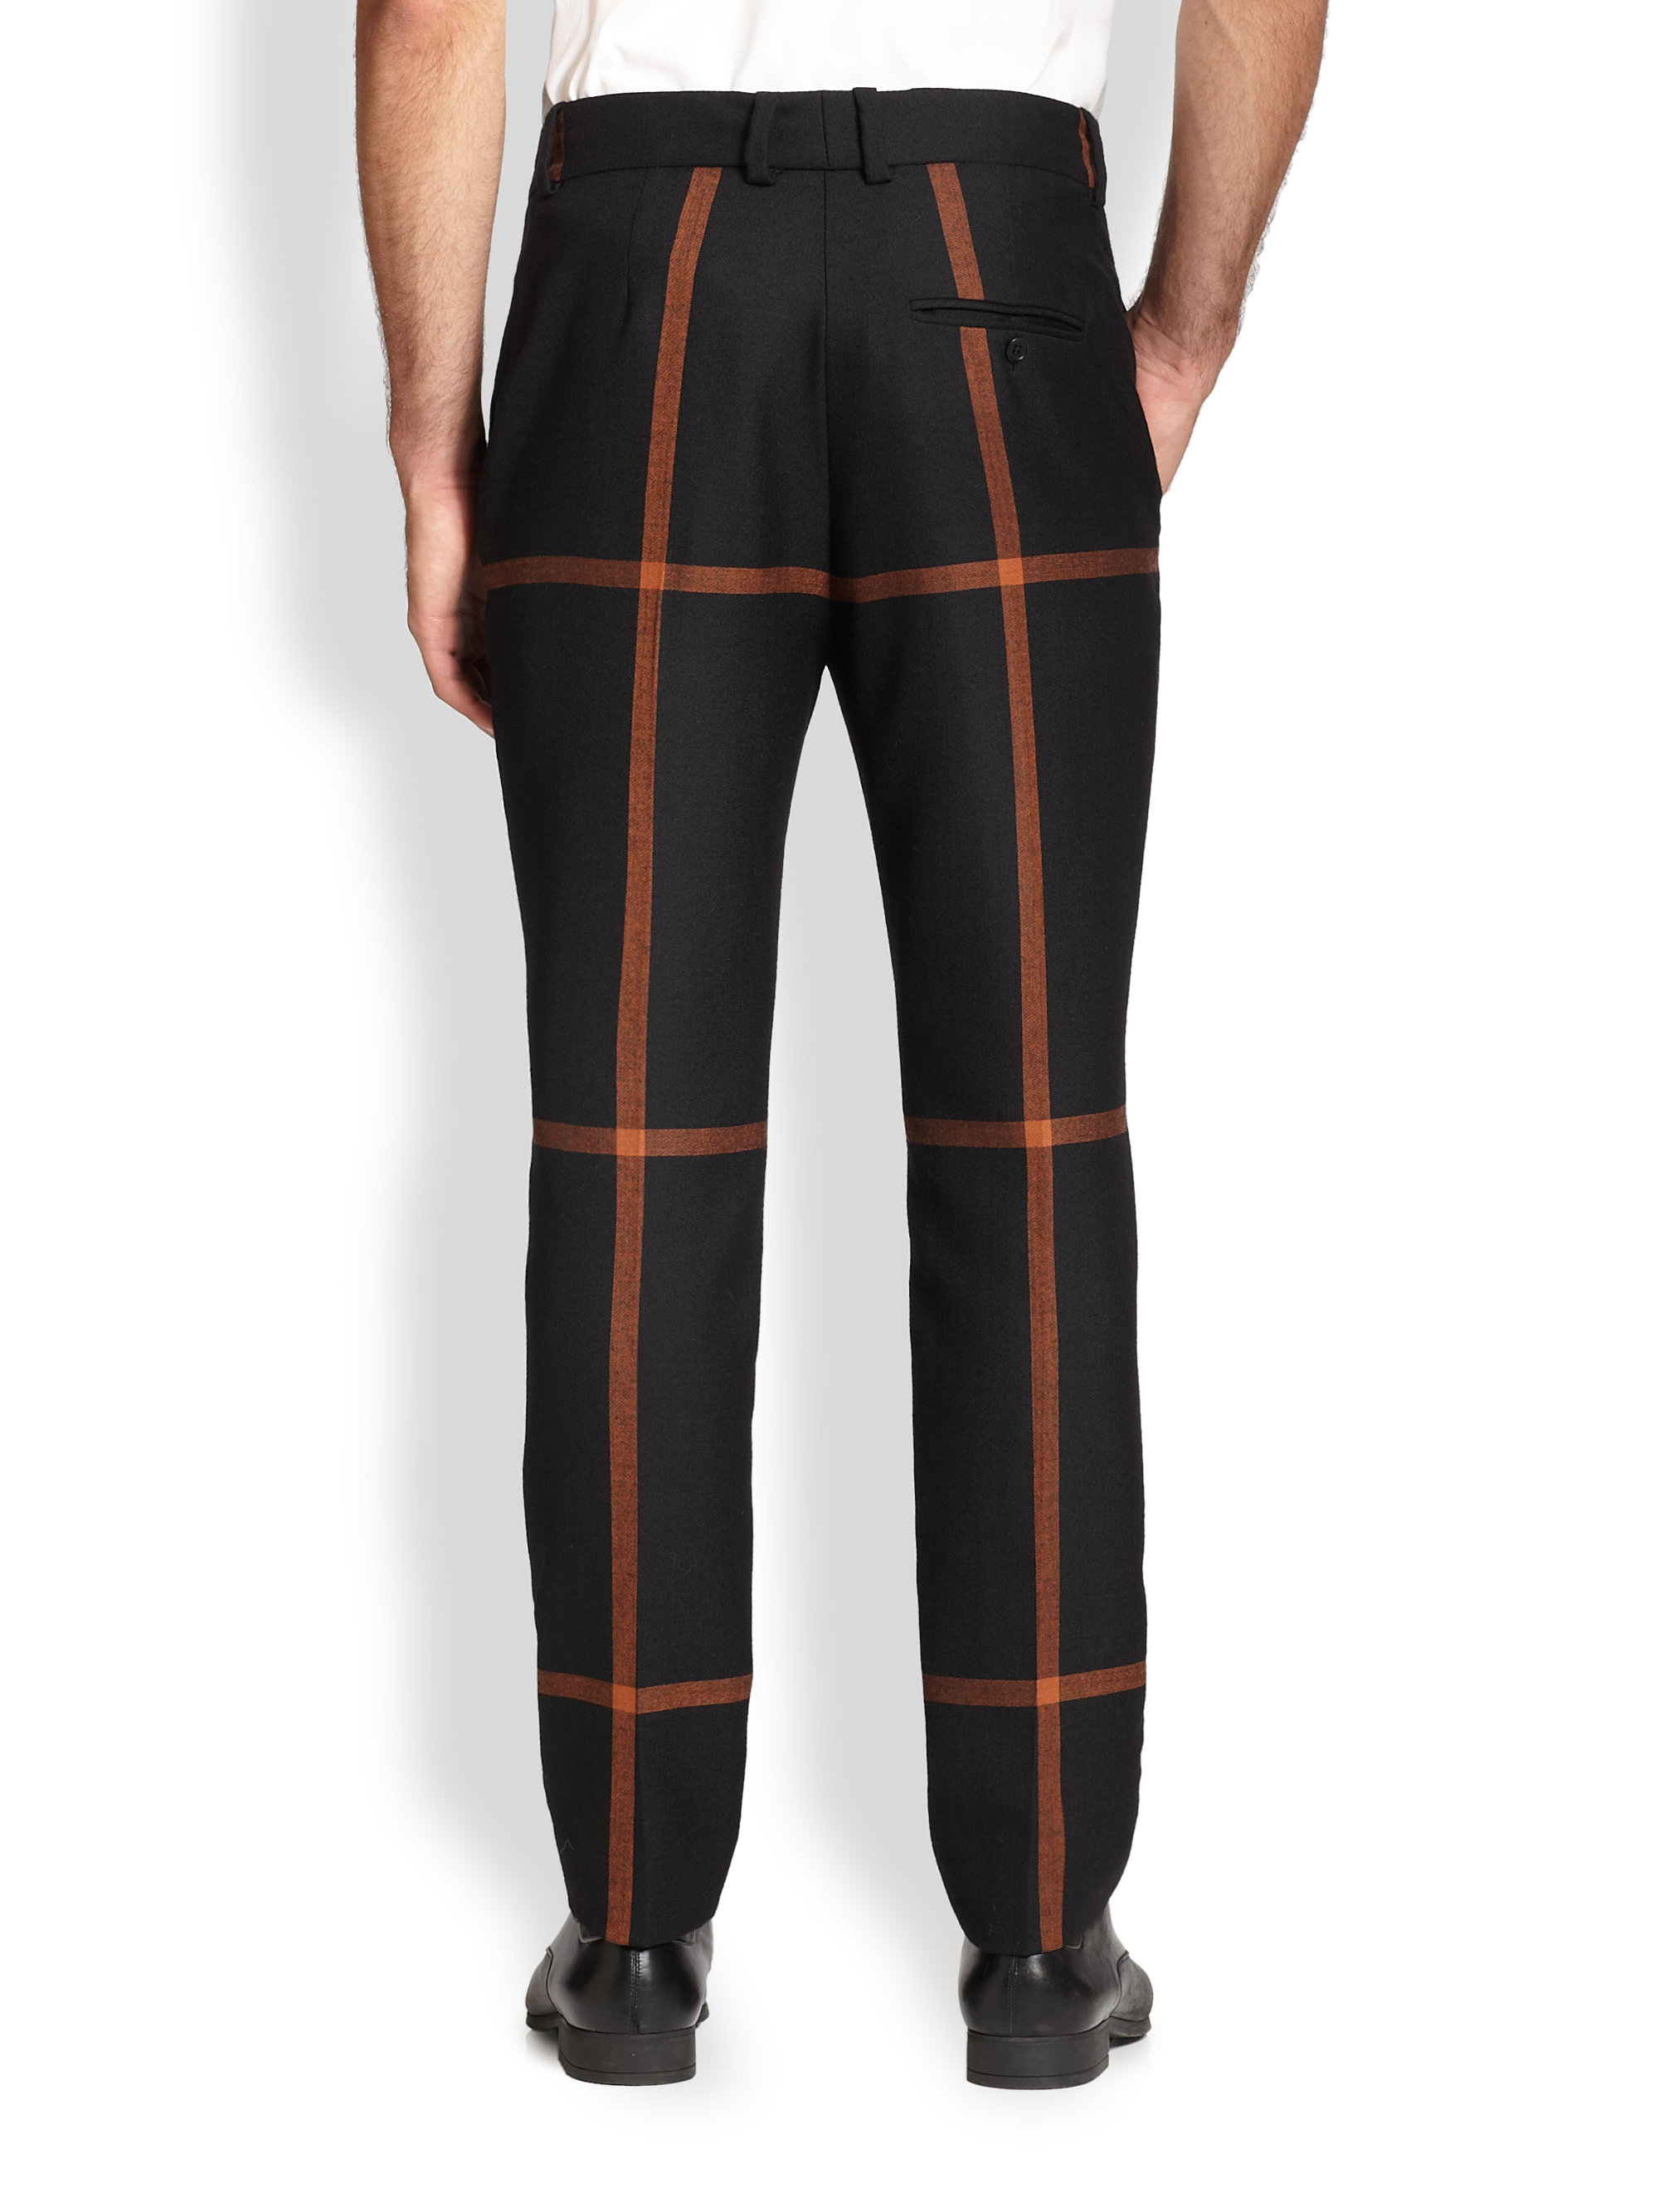 3.1 phillip lim Windowpane Riding Pants in Black for Men | Lyst